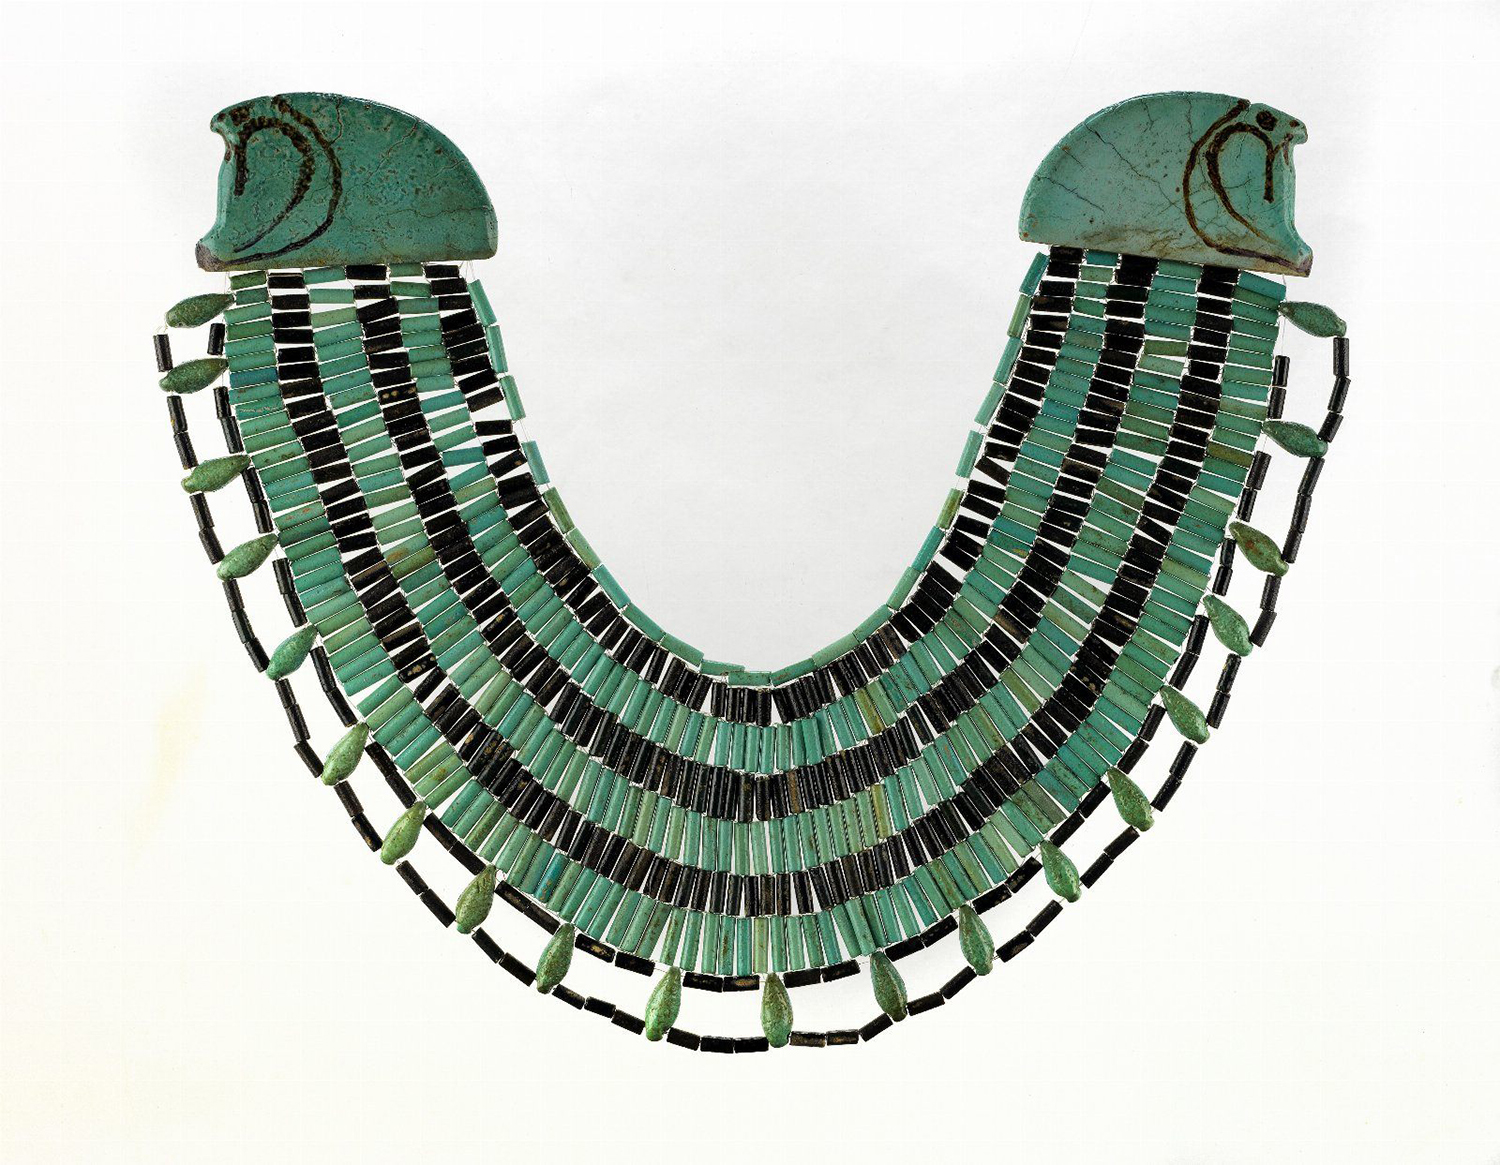 Figure 10:  Wesekh  collars were popular pieces of jewelry in ancient Egypt, worn by both men and women. This example, comprised of faience beads, was excavated at the site of Meydum. It dates to Egypt's Middle Kingdom (1980-1630 BCE). Image courtesy of the University of Pennsylvania Museum of Archaeology and Anthropology, accession number 31-27-303.